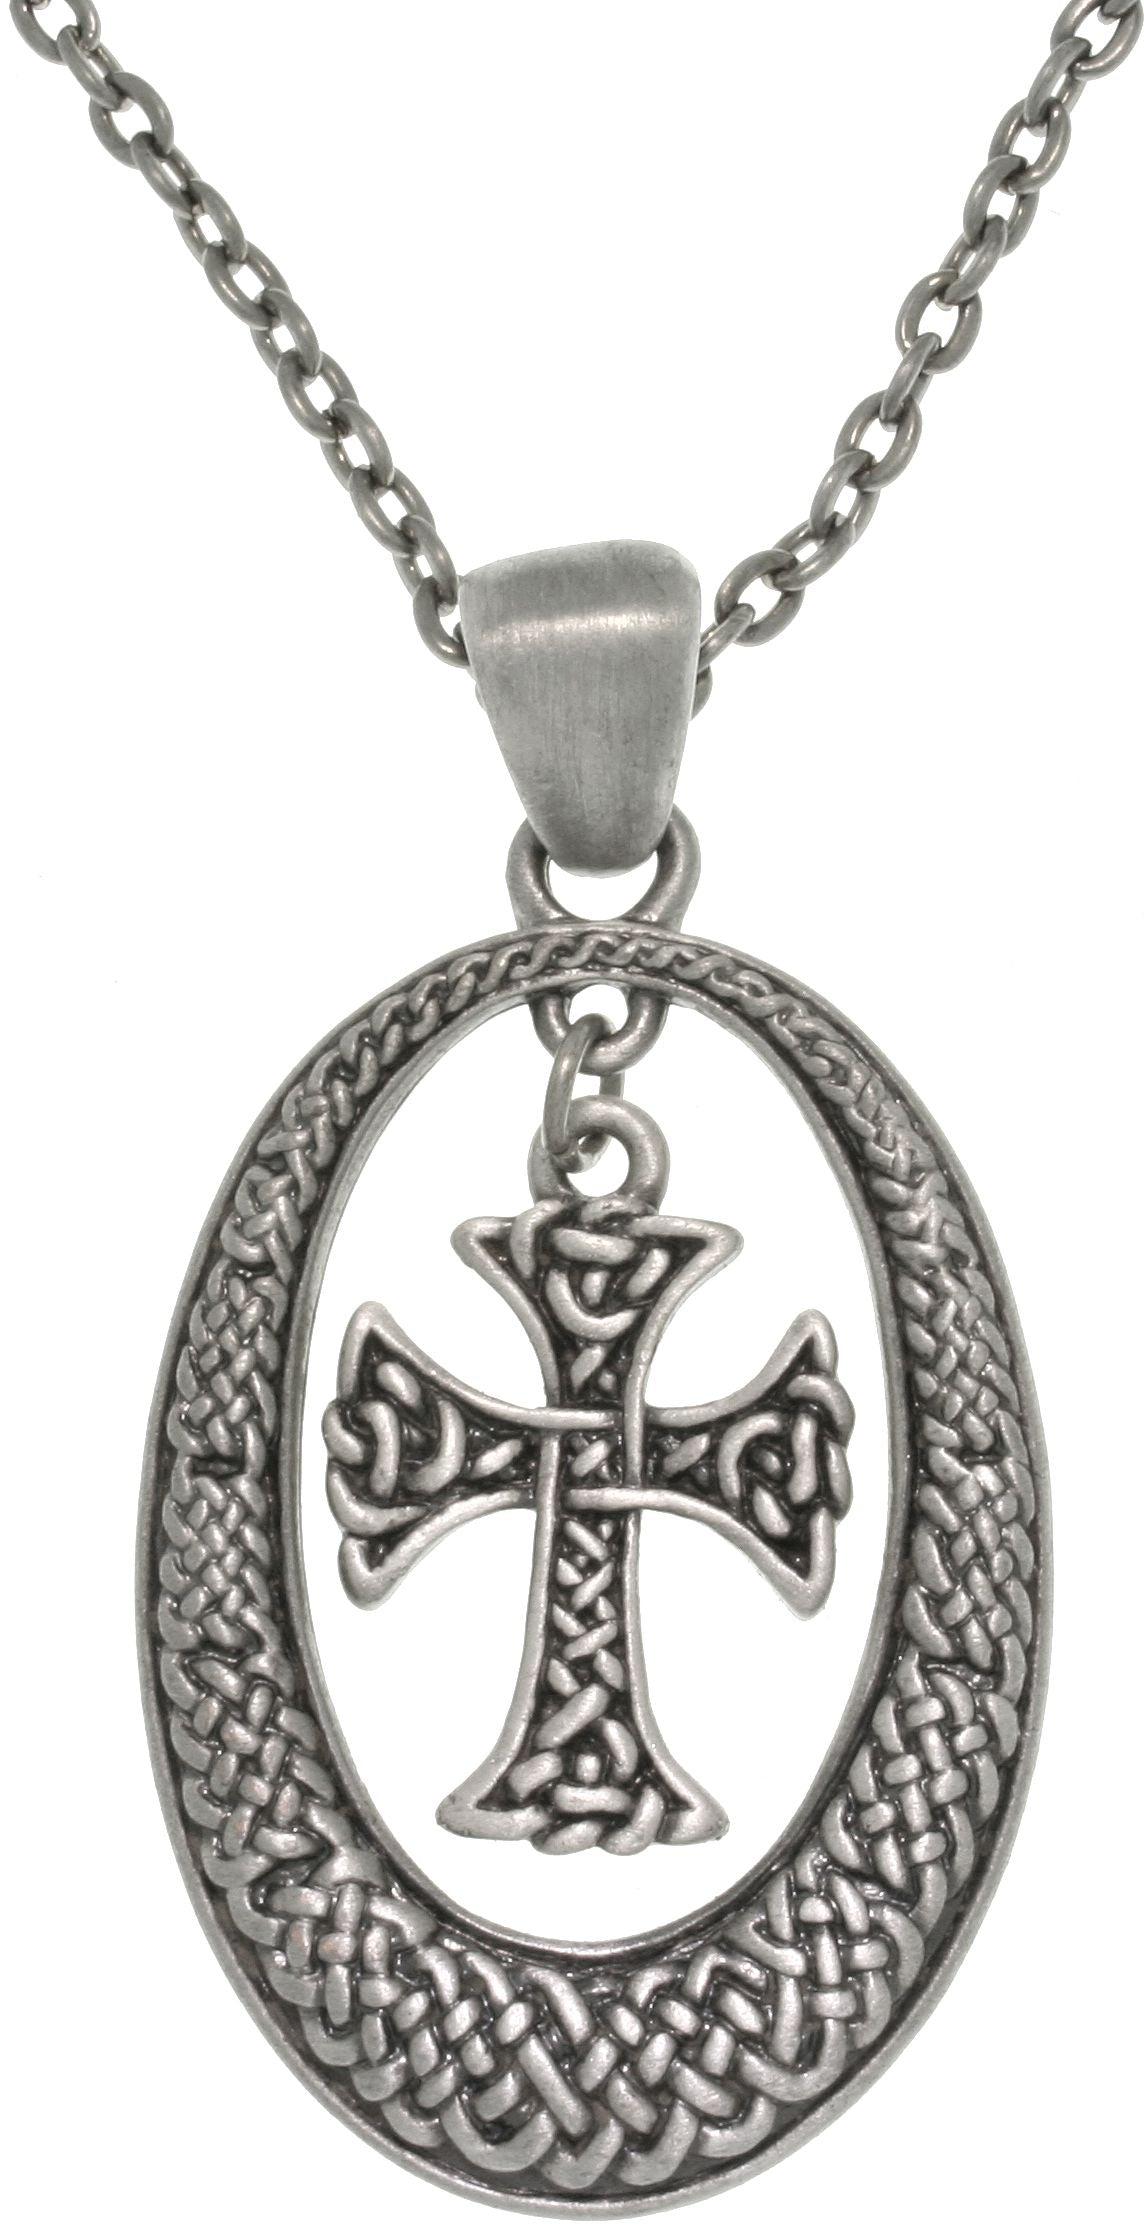 Jewelry Trends Pewter Celtic Knot Cross with Oval Frame Pendant on Chain Necklace